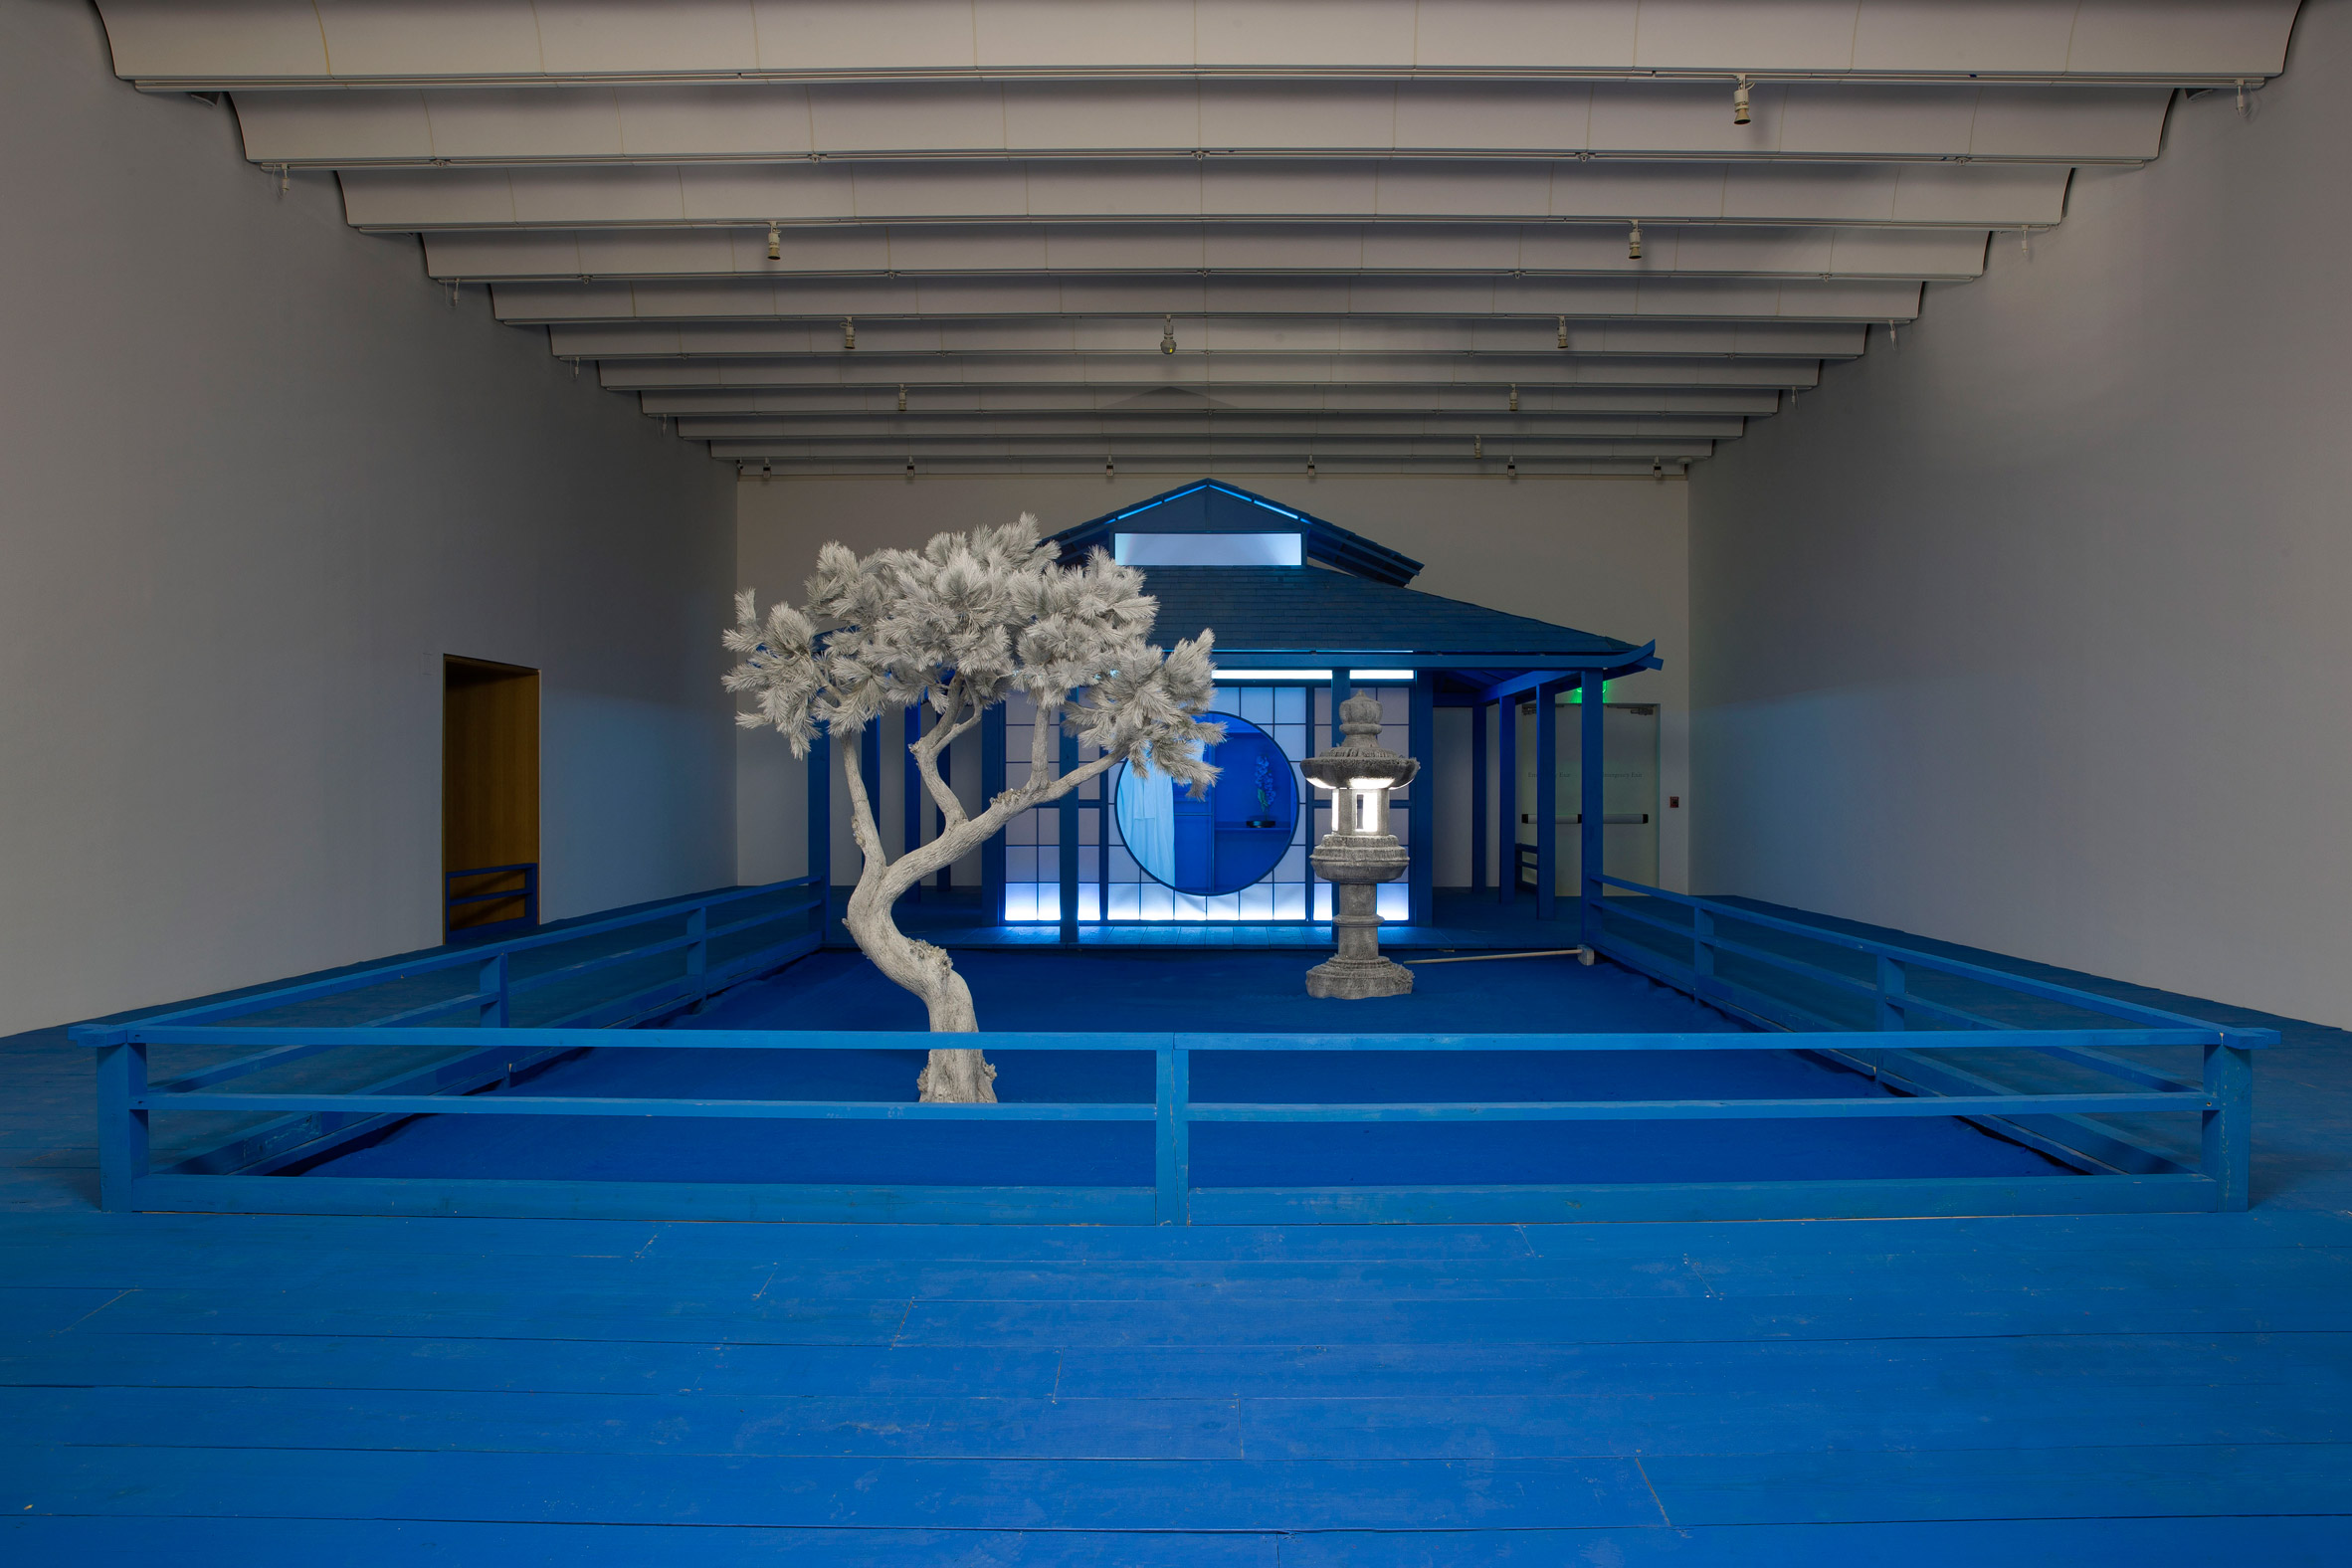 Daniel Arsham installs bright blue tea house inside Atlanta museum